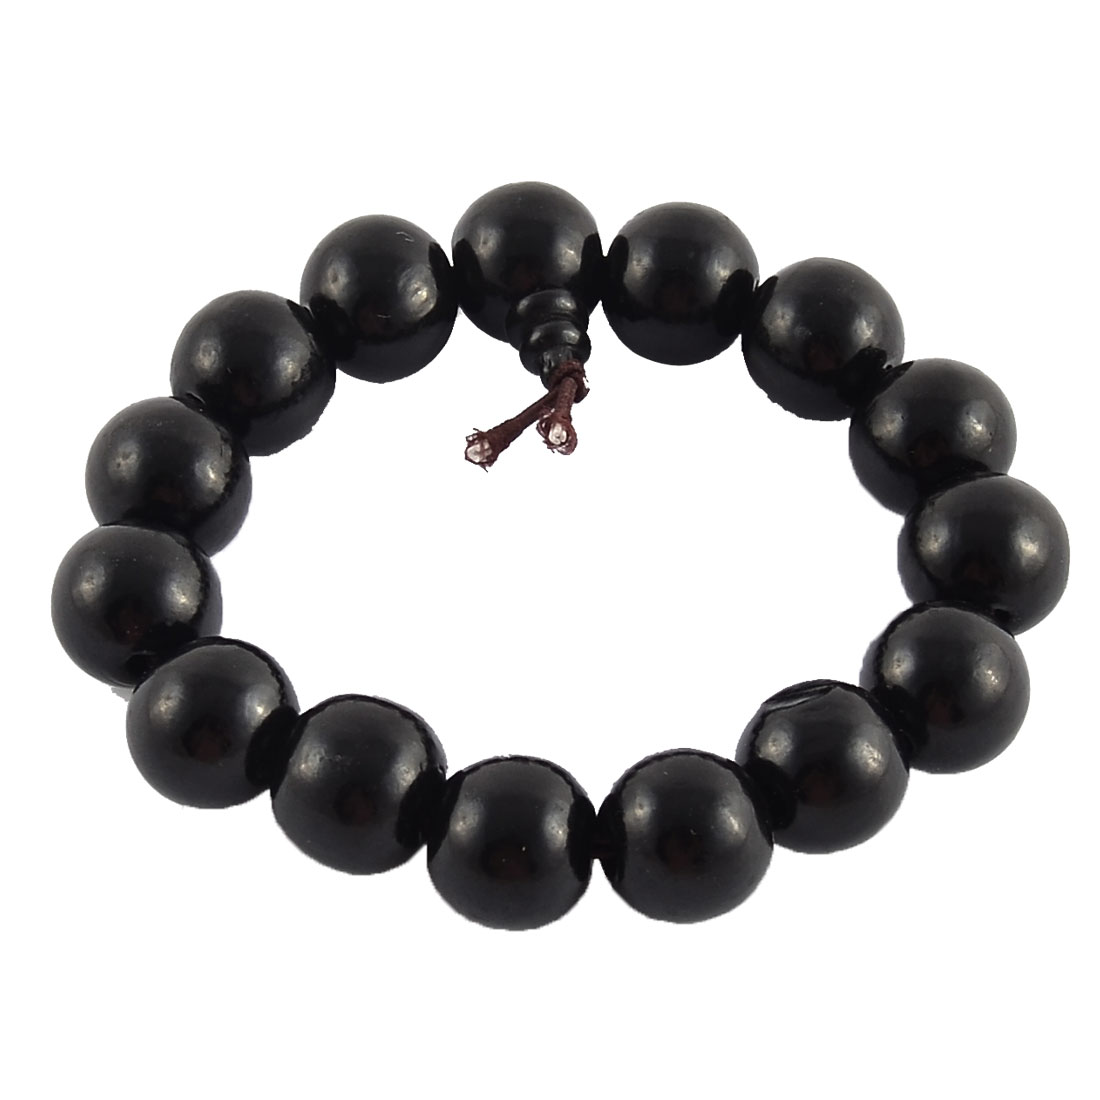 Plastic Round Beads Stretch Handmade Craft Prayer Wrist Bangle Bracelet Black